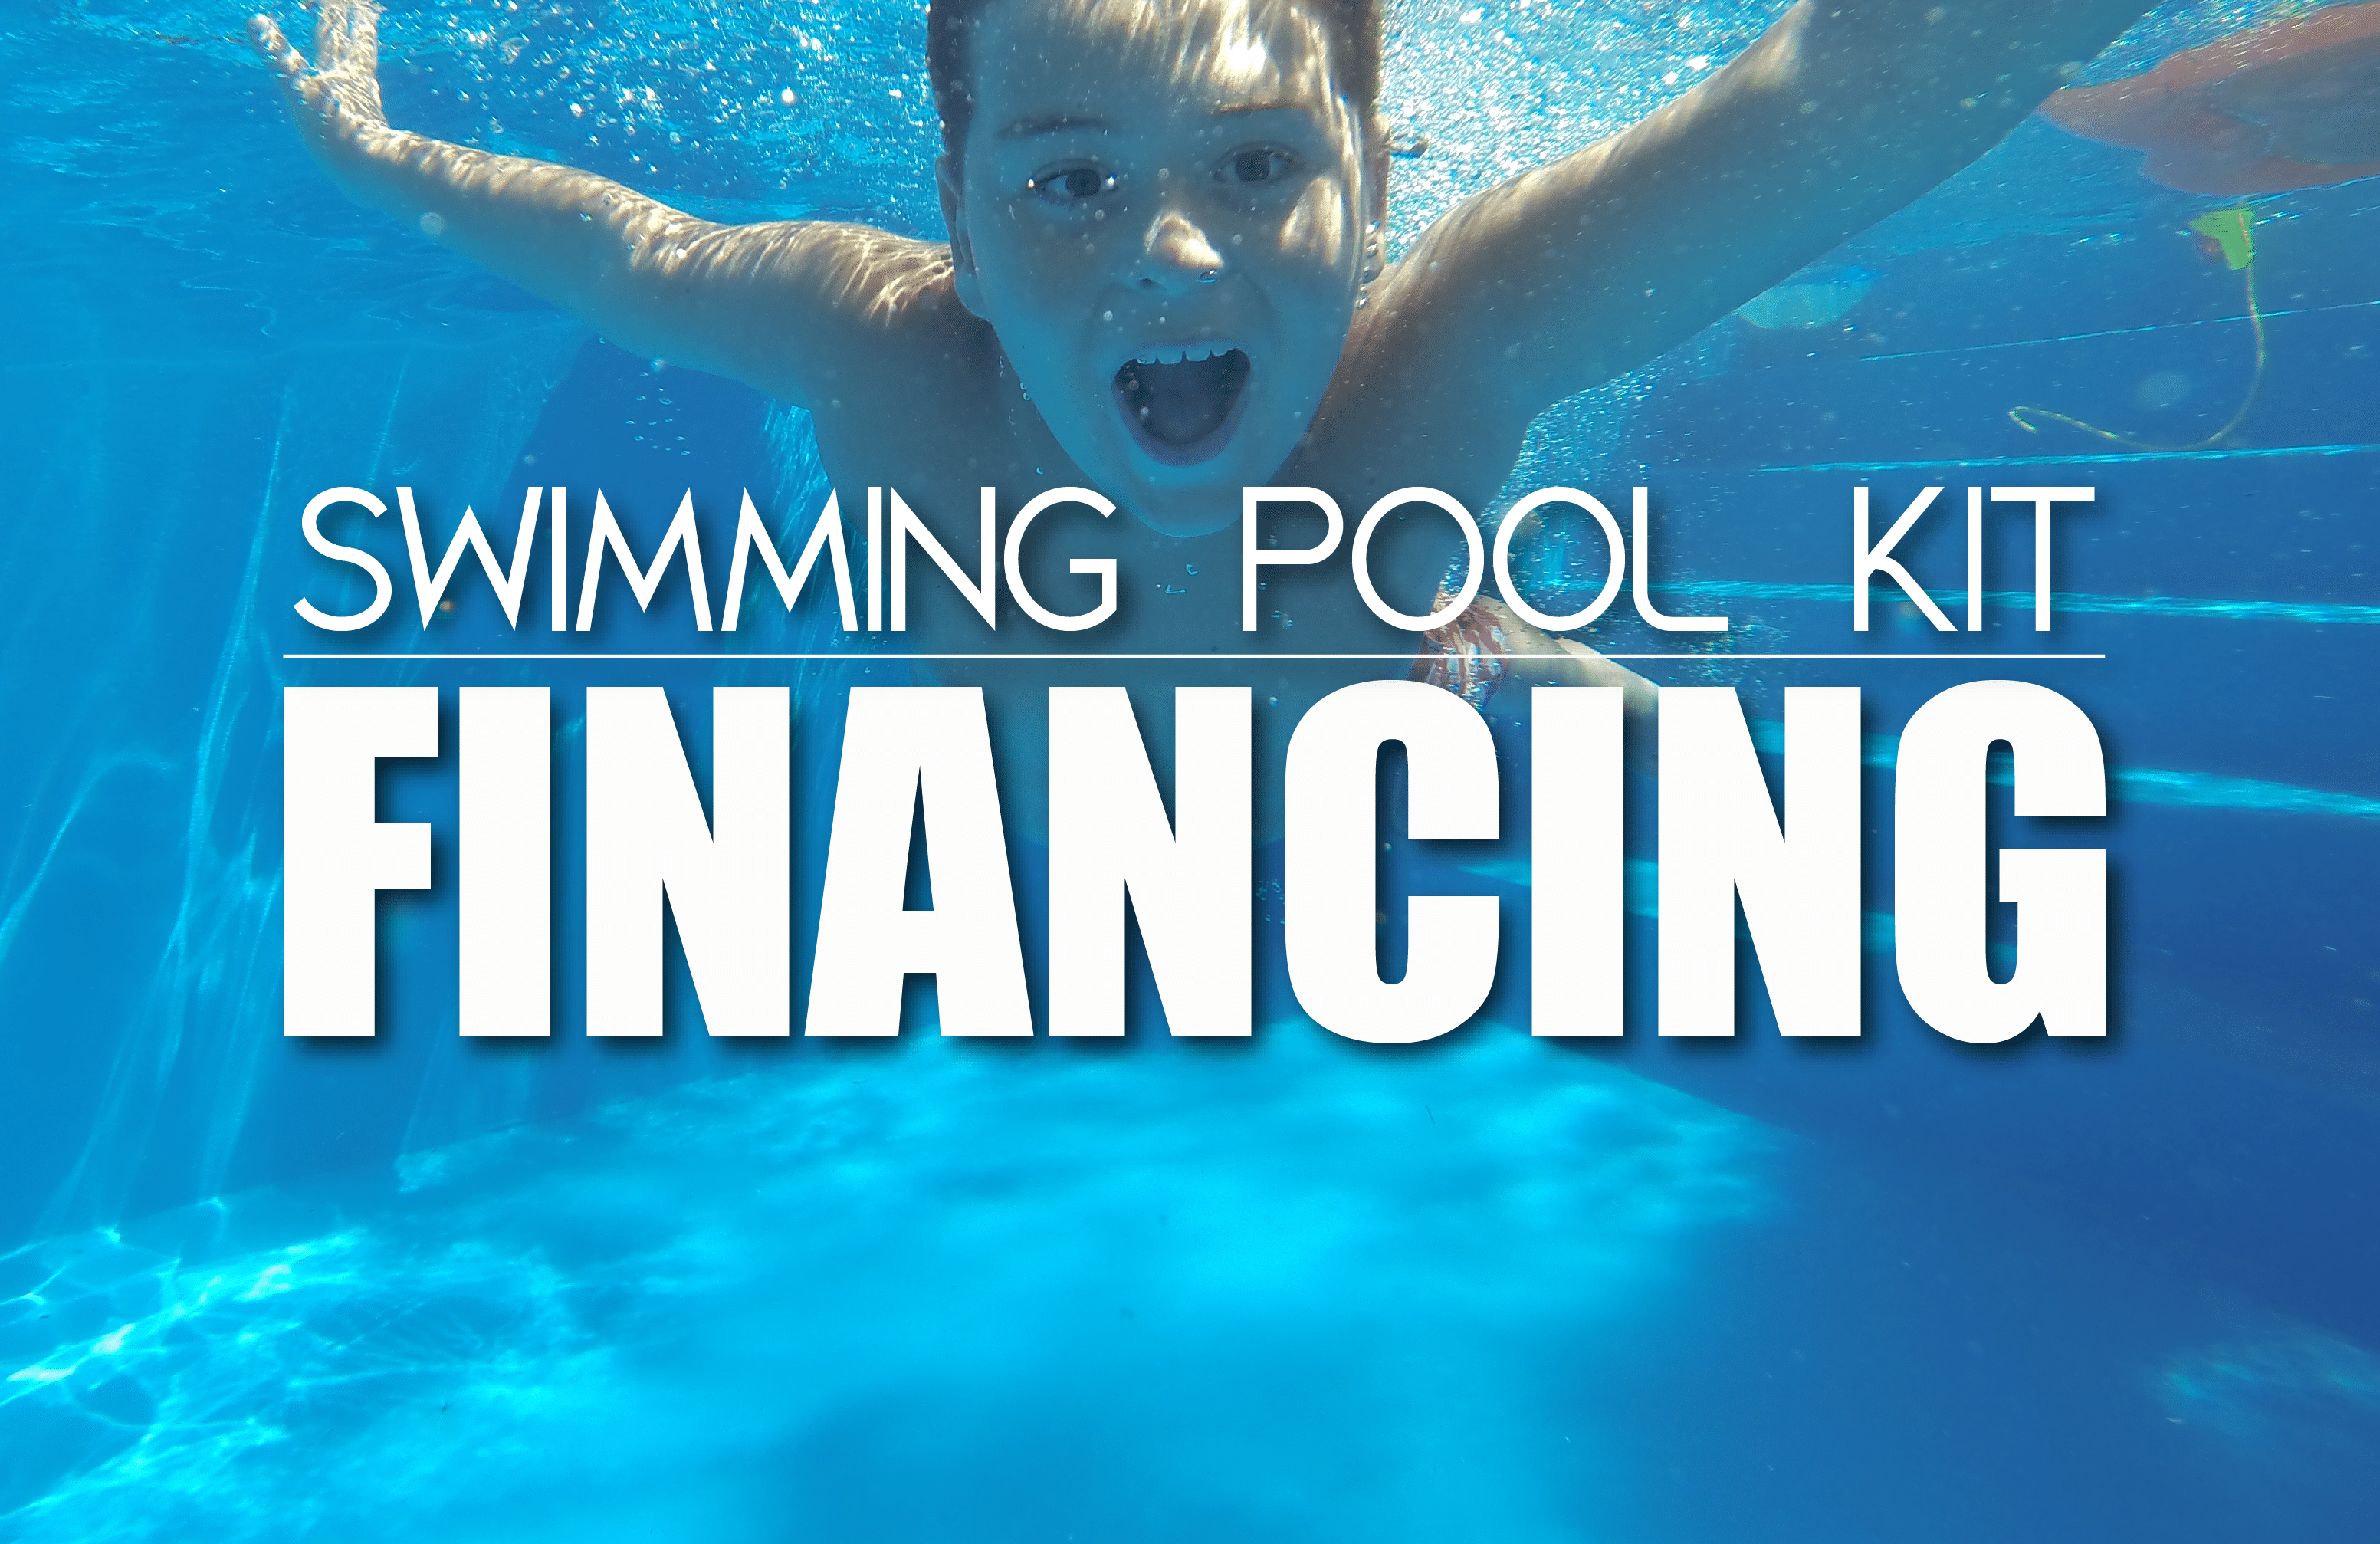 Swimming pool kit financing instant approval pool for Swimming pool financing